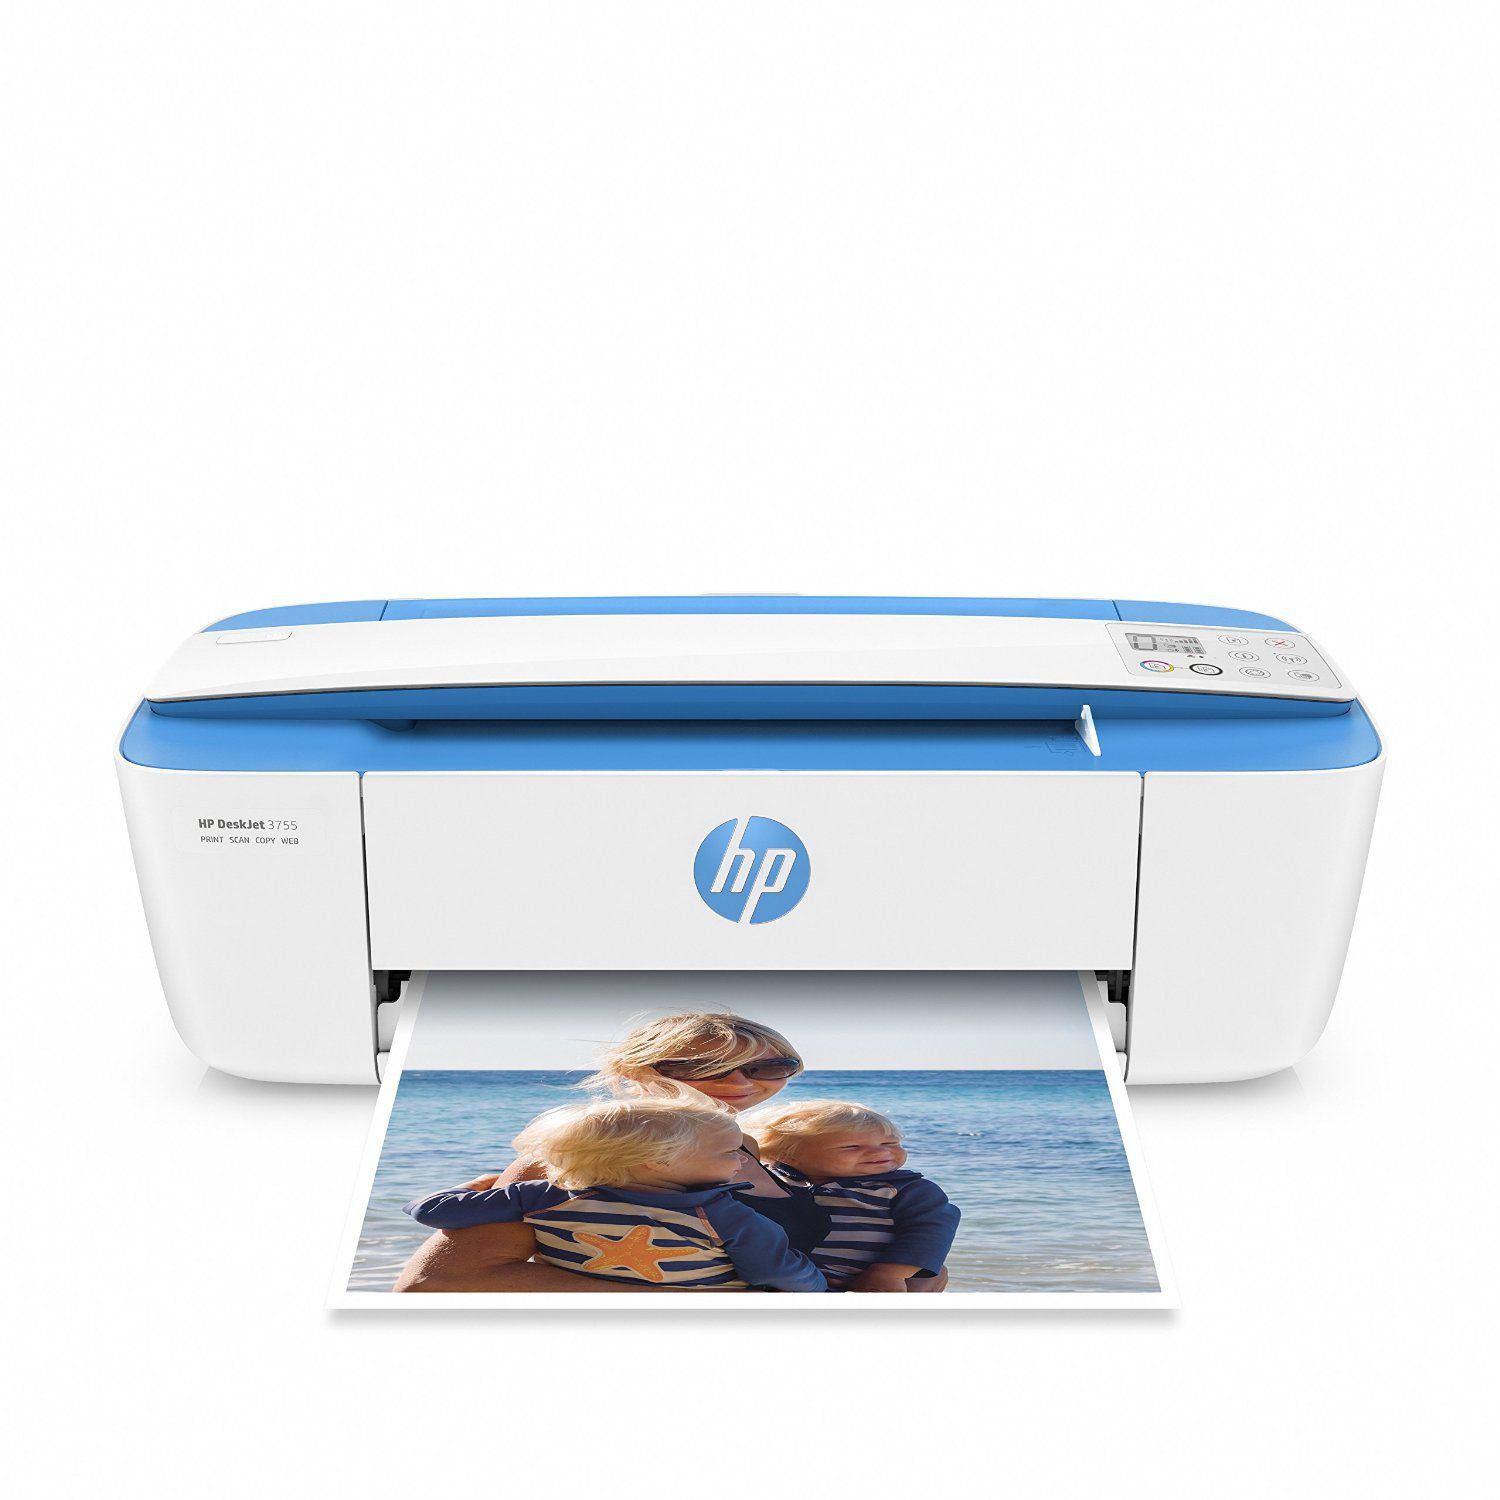 HP DeskJet 3755 Compact All-in-One Photo Printer